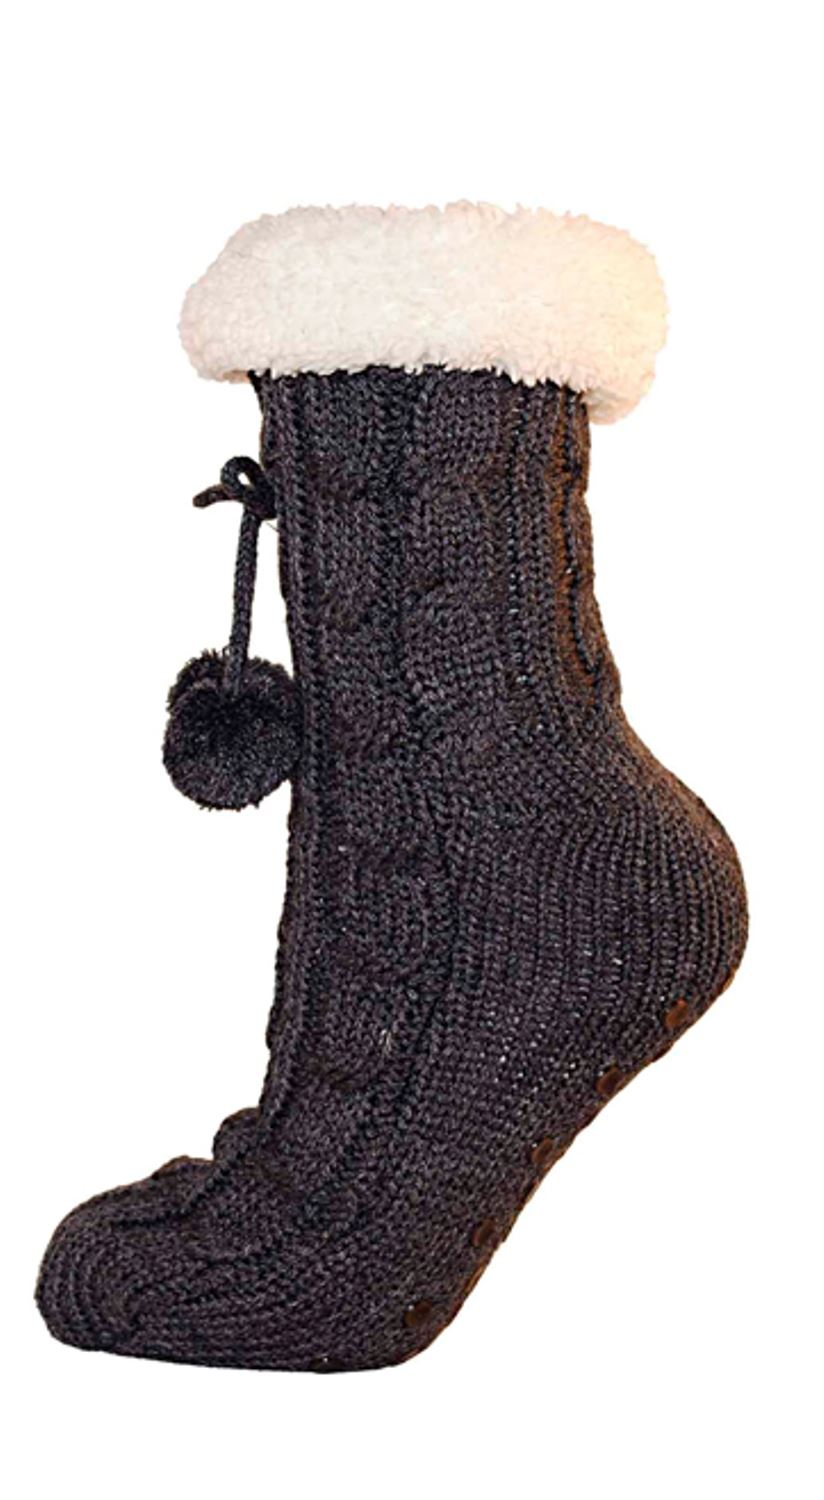 Ladies Cable Knit Fur Lined Slipper Gripper Bed Socks With Pom Poms - One Size | EBay